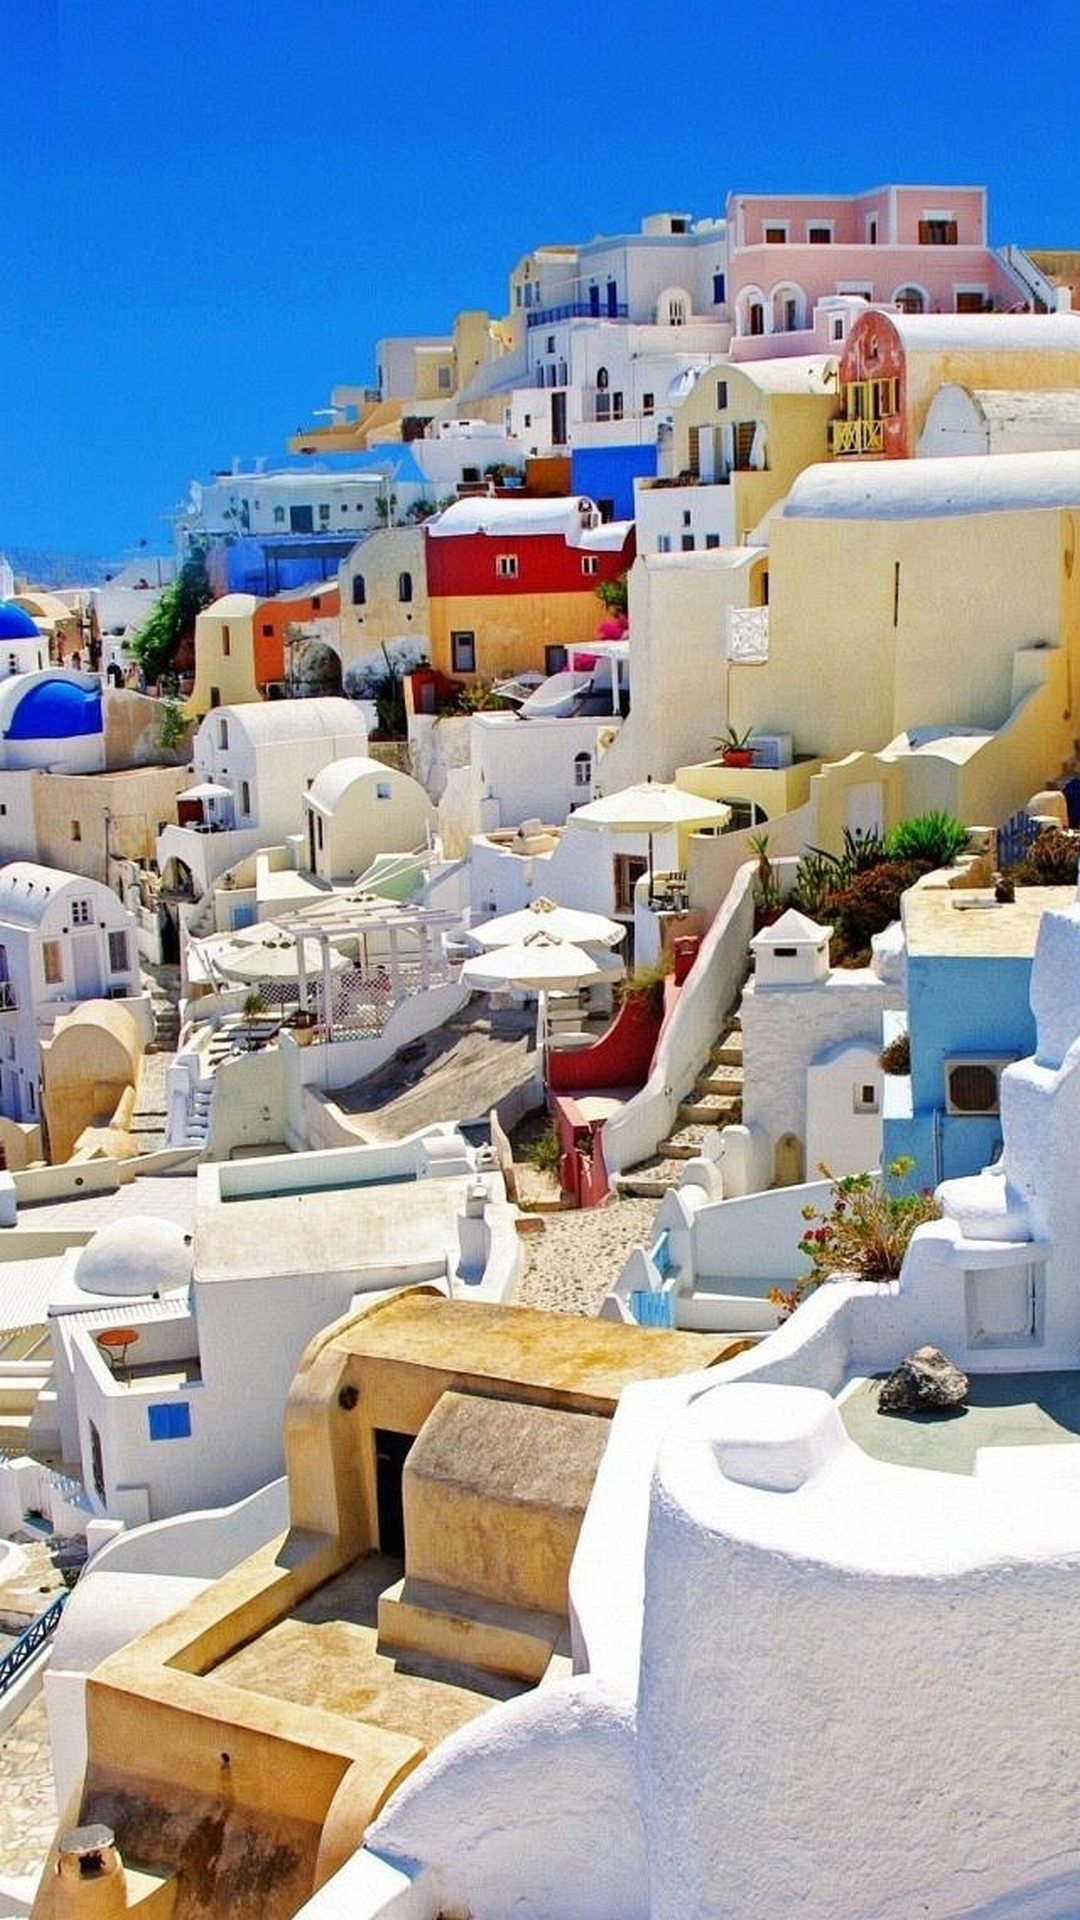 3d Wallpaper For Htc One M8 Santorini Greece Best Htc One Wallpapers Free And Easy